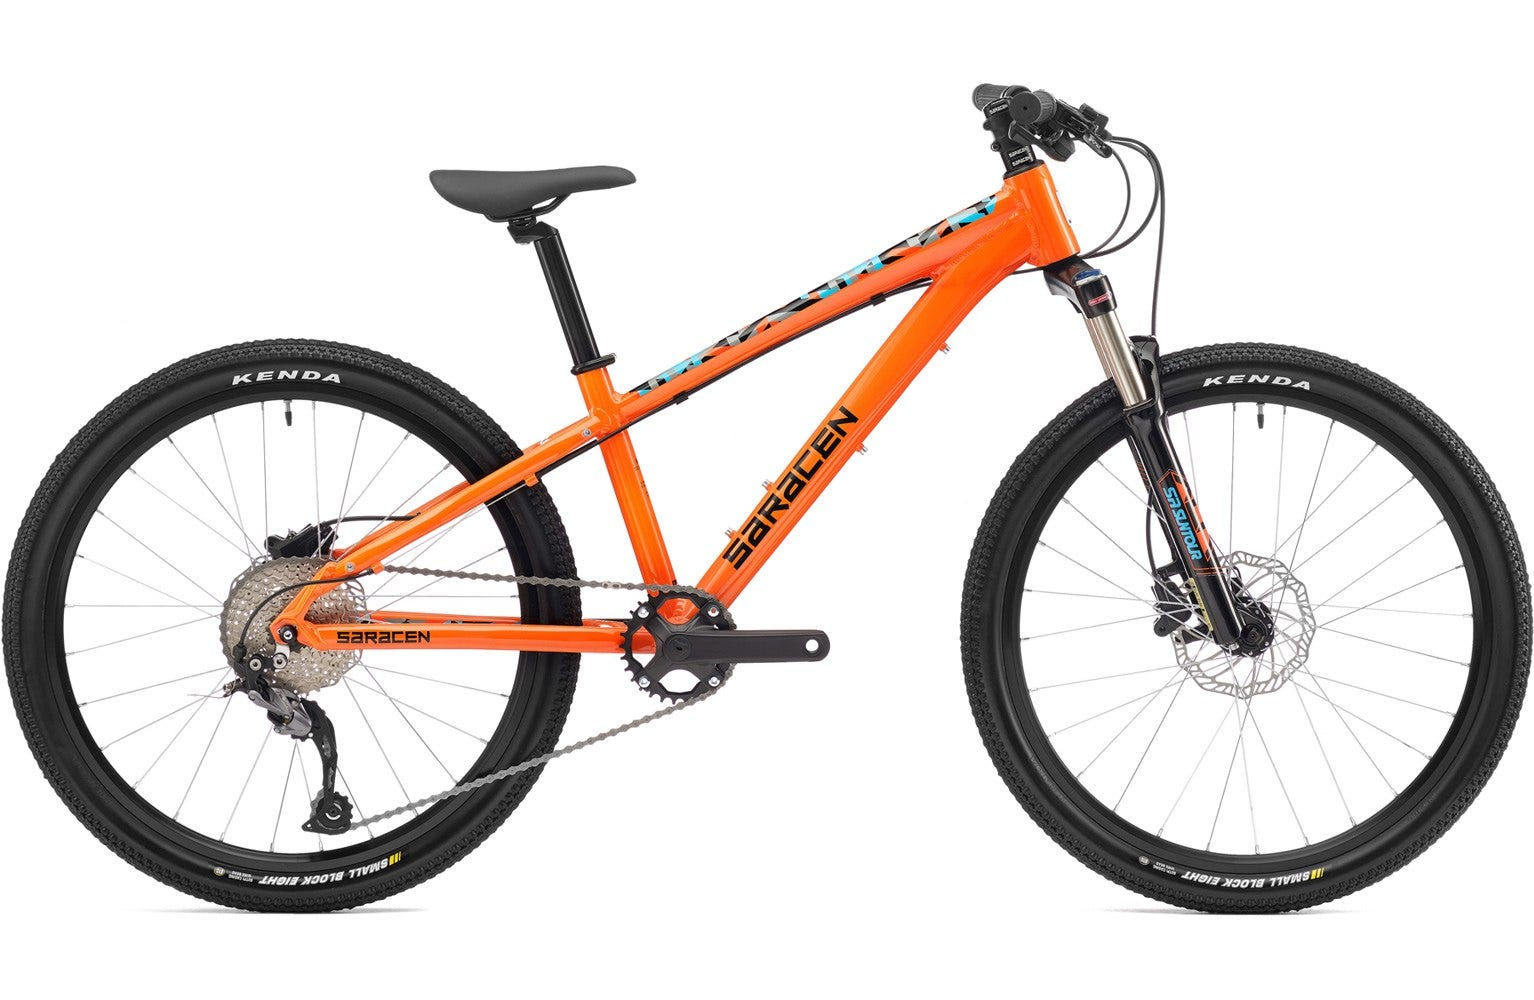 Saracen Mantra 2.4 bike